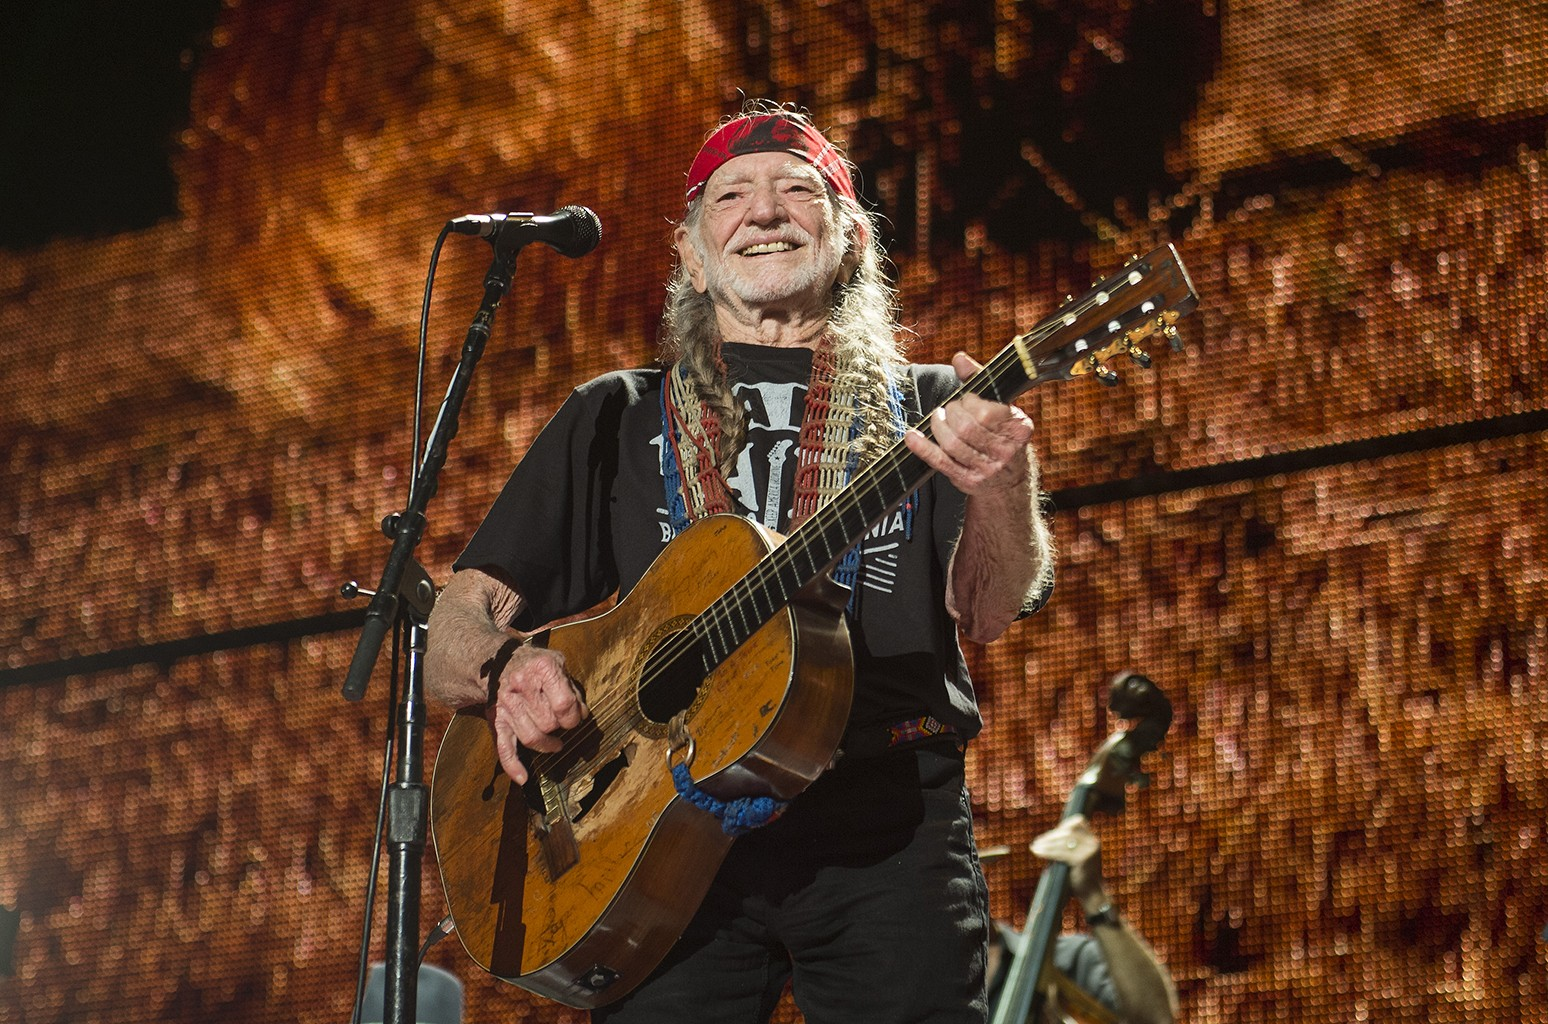 Willie Nelson performs at Farm Aid at Jiffy Lube Live in Bristow, Virginia on Sept. 17, 2016.